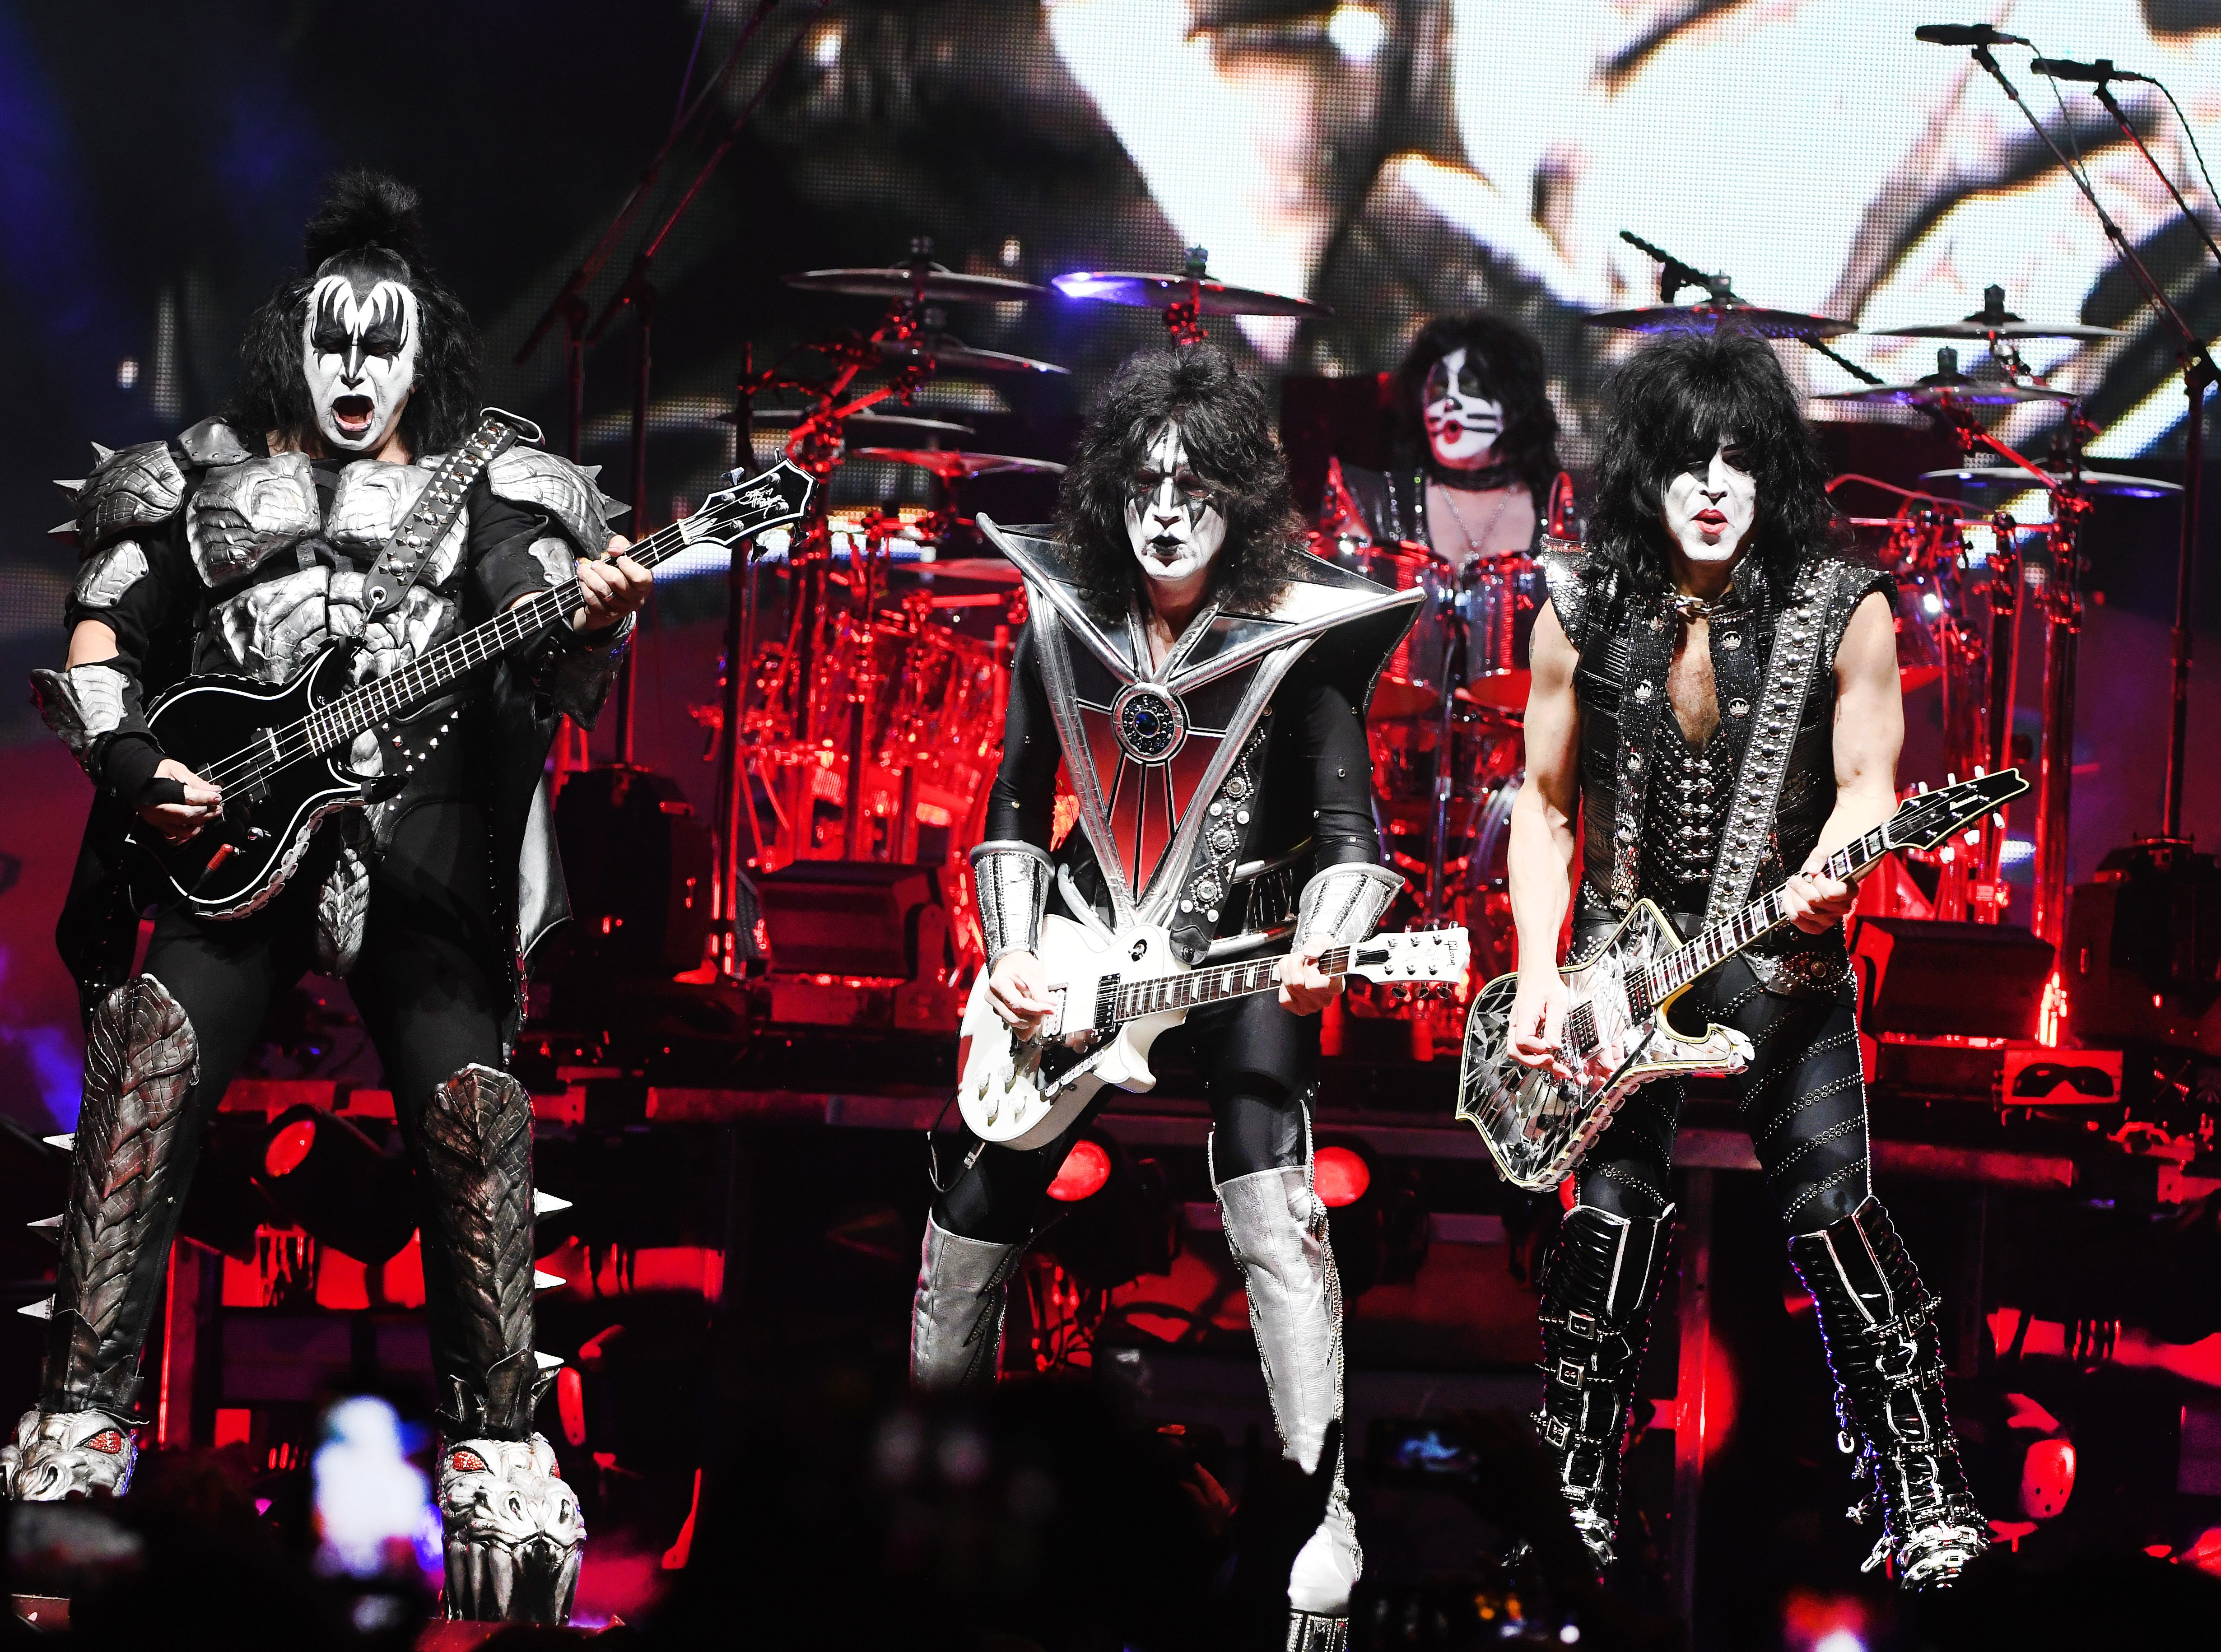 KISS 'End of the Road' tour with original members Gene Simmons on bass and Paul Stanley lead vocals along with Tommy Thayer on lead guitar and Eric Singer on drums play Little Caesars Arena in Detroit, Michigan on March 13, 2019.  (Image by Daniel Mears / The Detroit News)